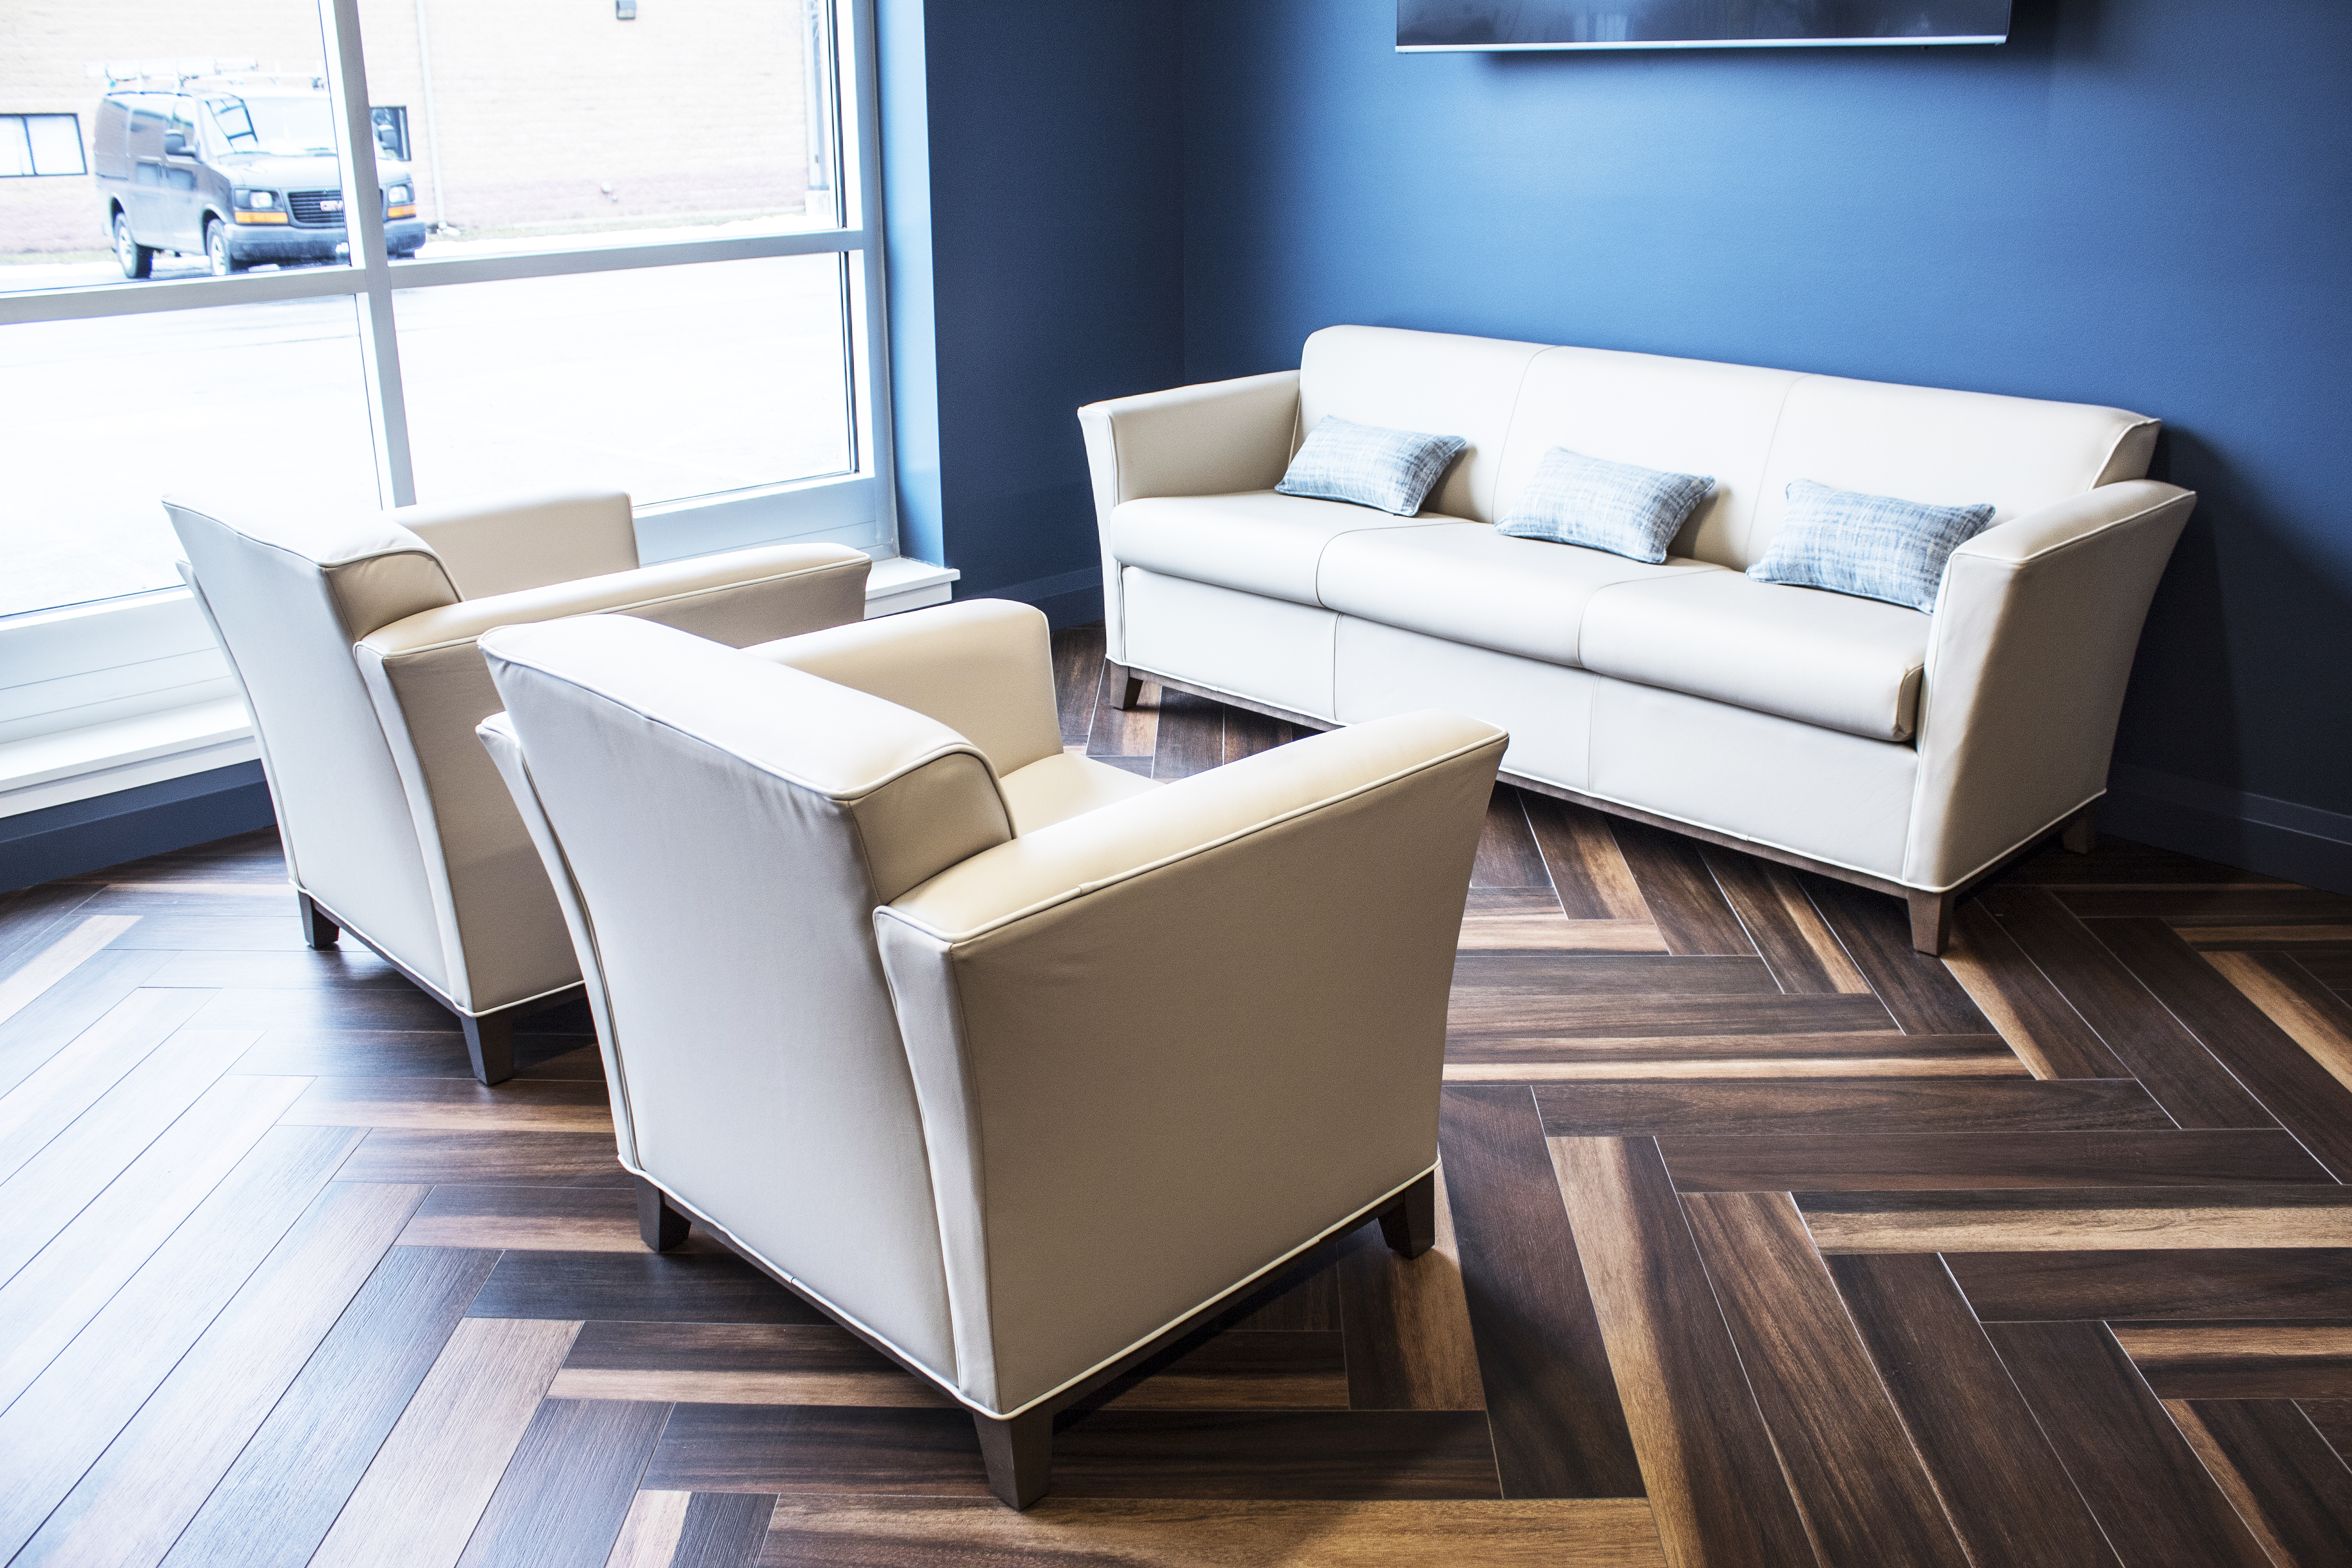 transteck executive office loung seating